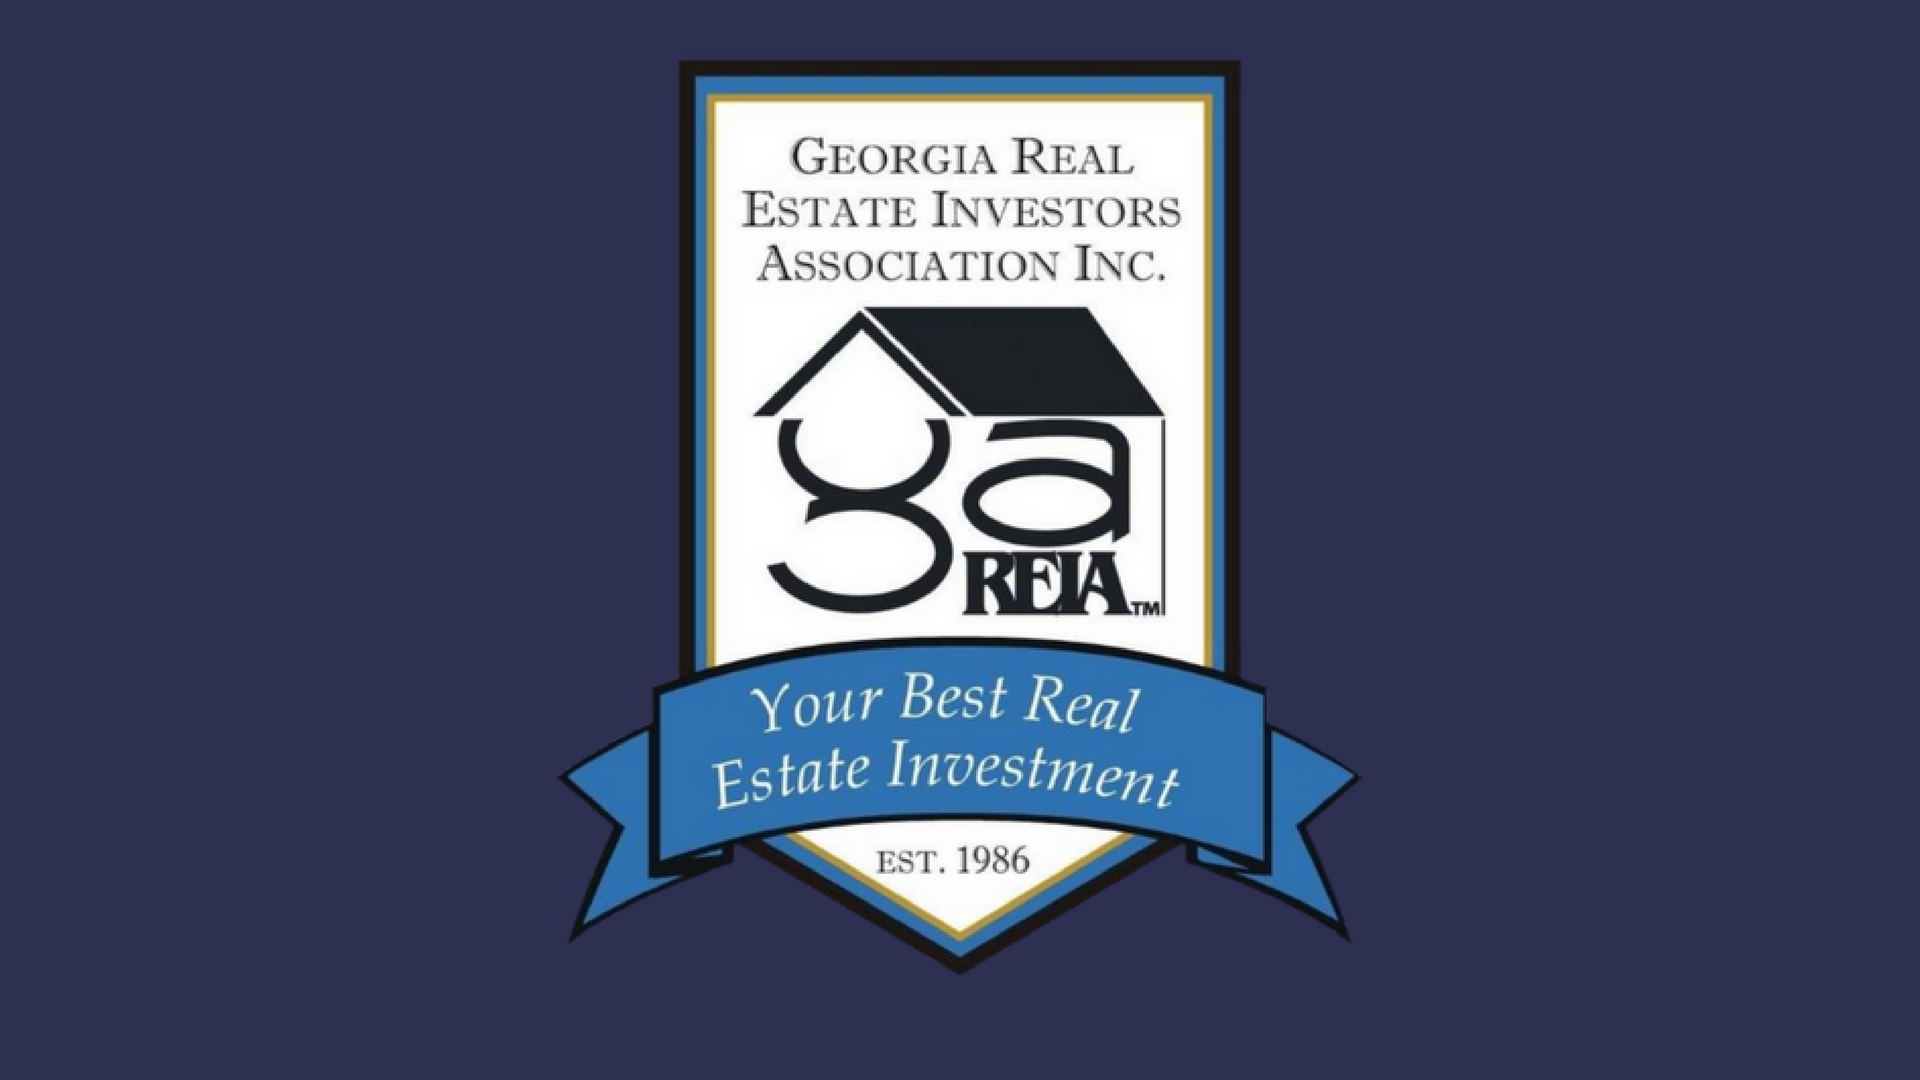 Georgia Real Estate Investors Association